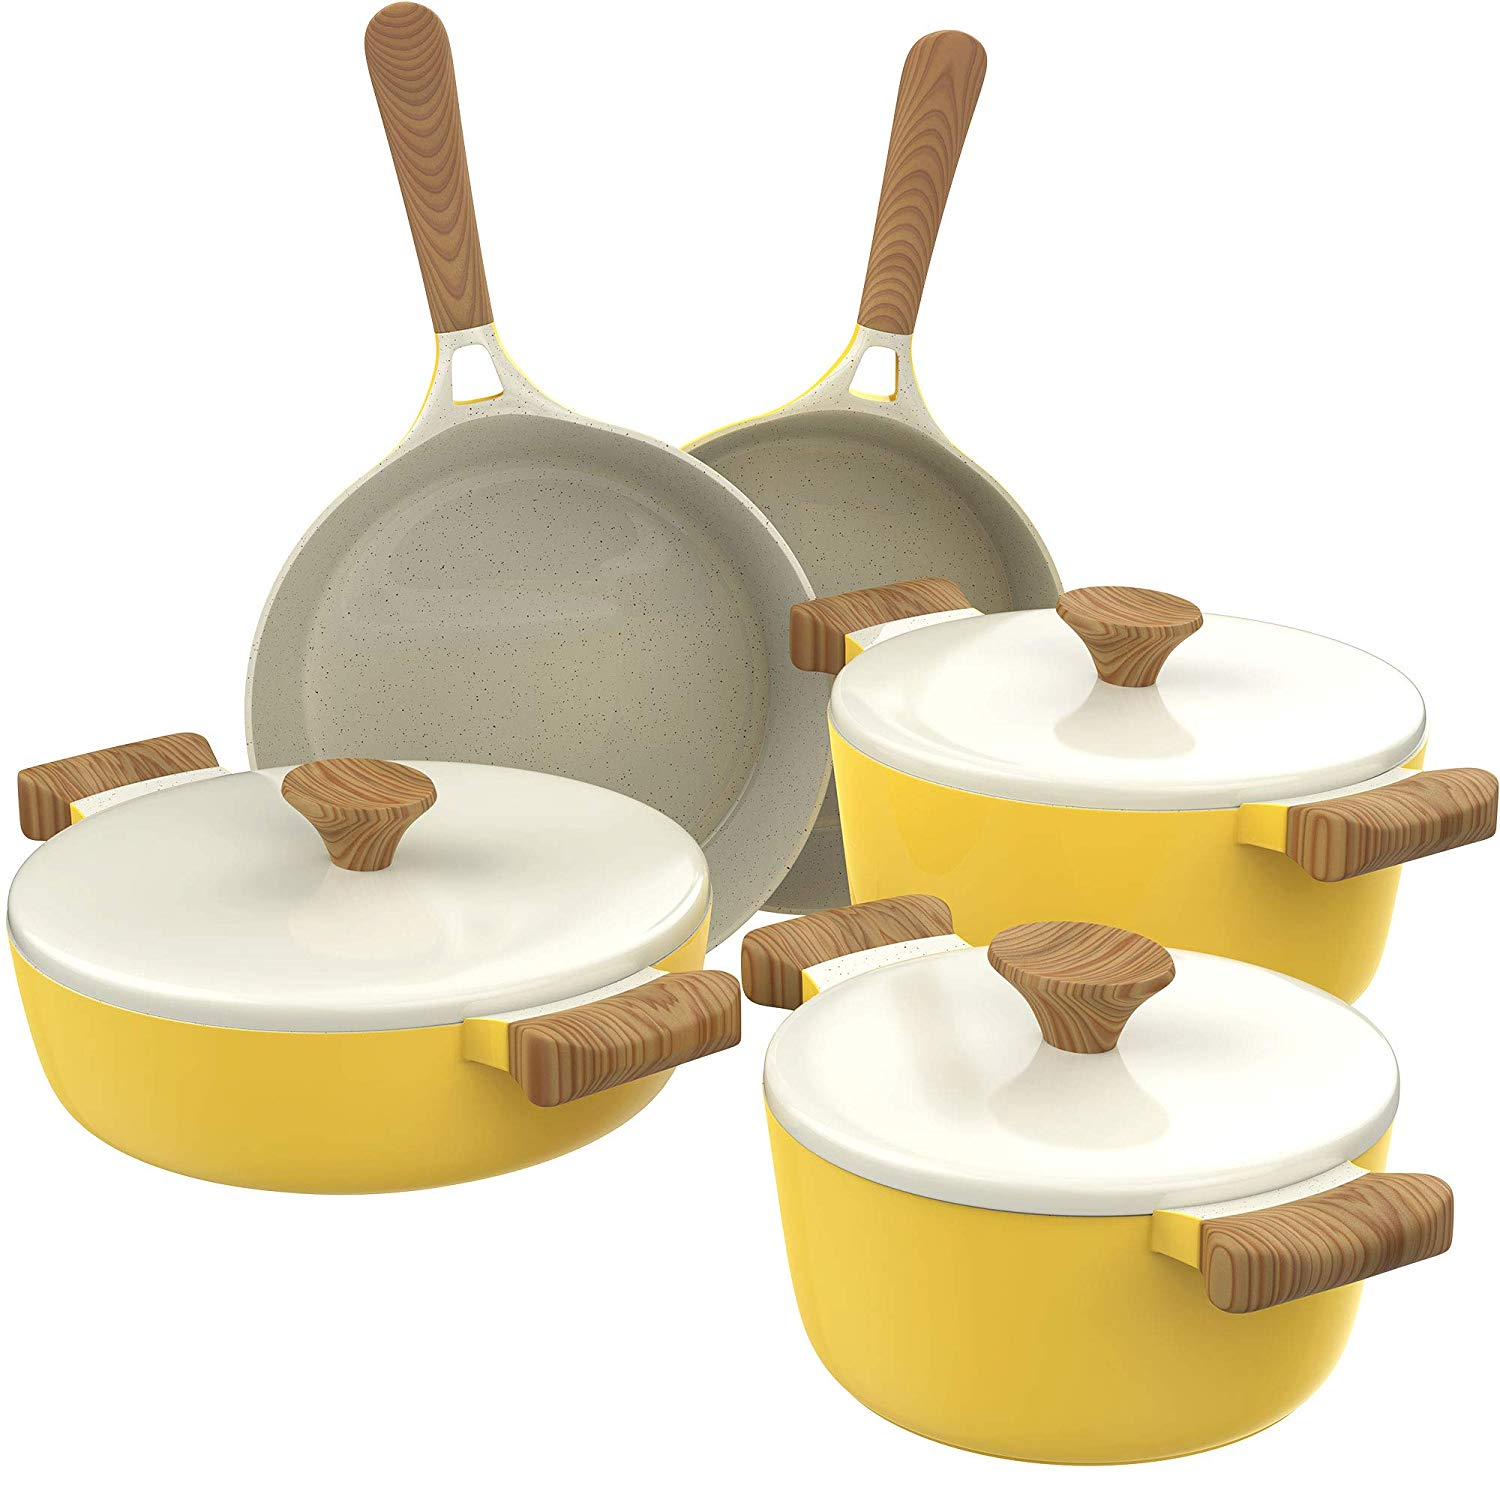 hOmeLabs Ceramic 8 Piece Cookware Set